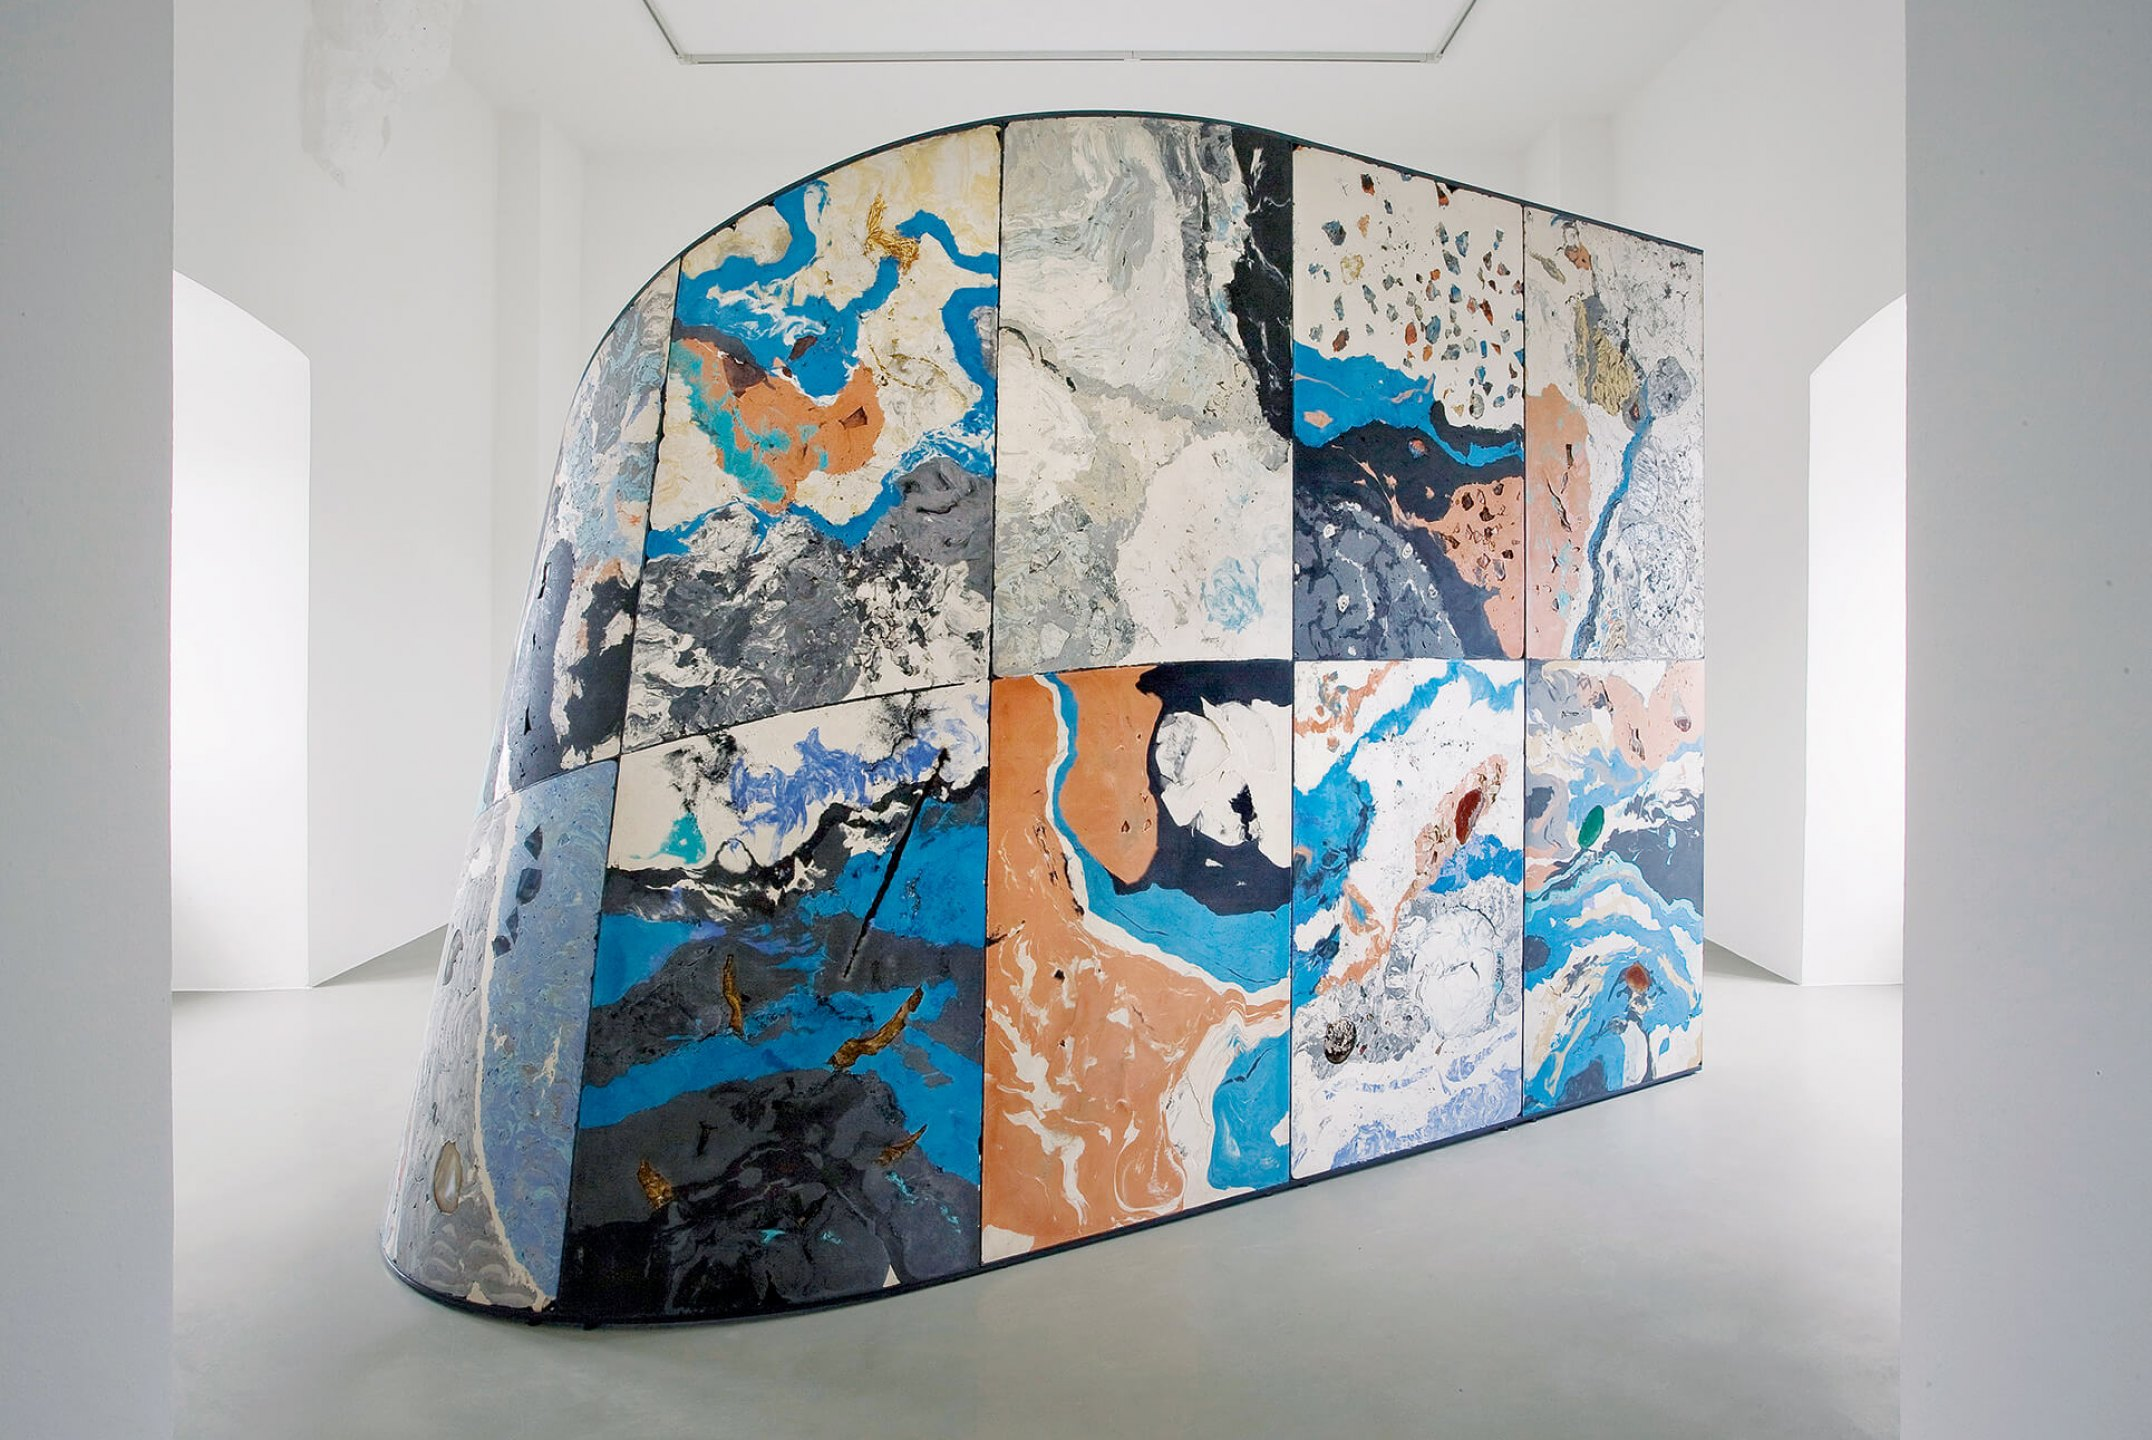 Mariana Castillo Deball,<em>Uncomfortable Objects</em>, 2012, dOCUMENTA (13), plaster, pigments, stones, shells, masks, fabric, glass, wood, clay, and diverse objects mounted on a steel frame, 600 × 400 × 300 cm<br> - Mendes Wood DM